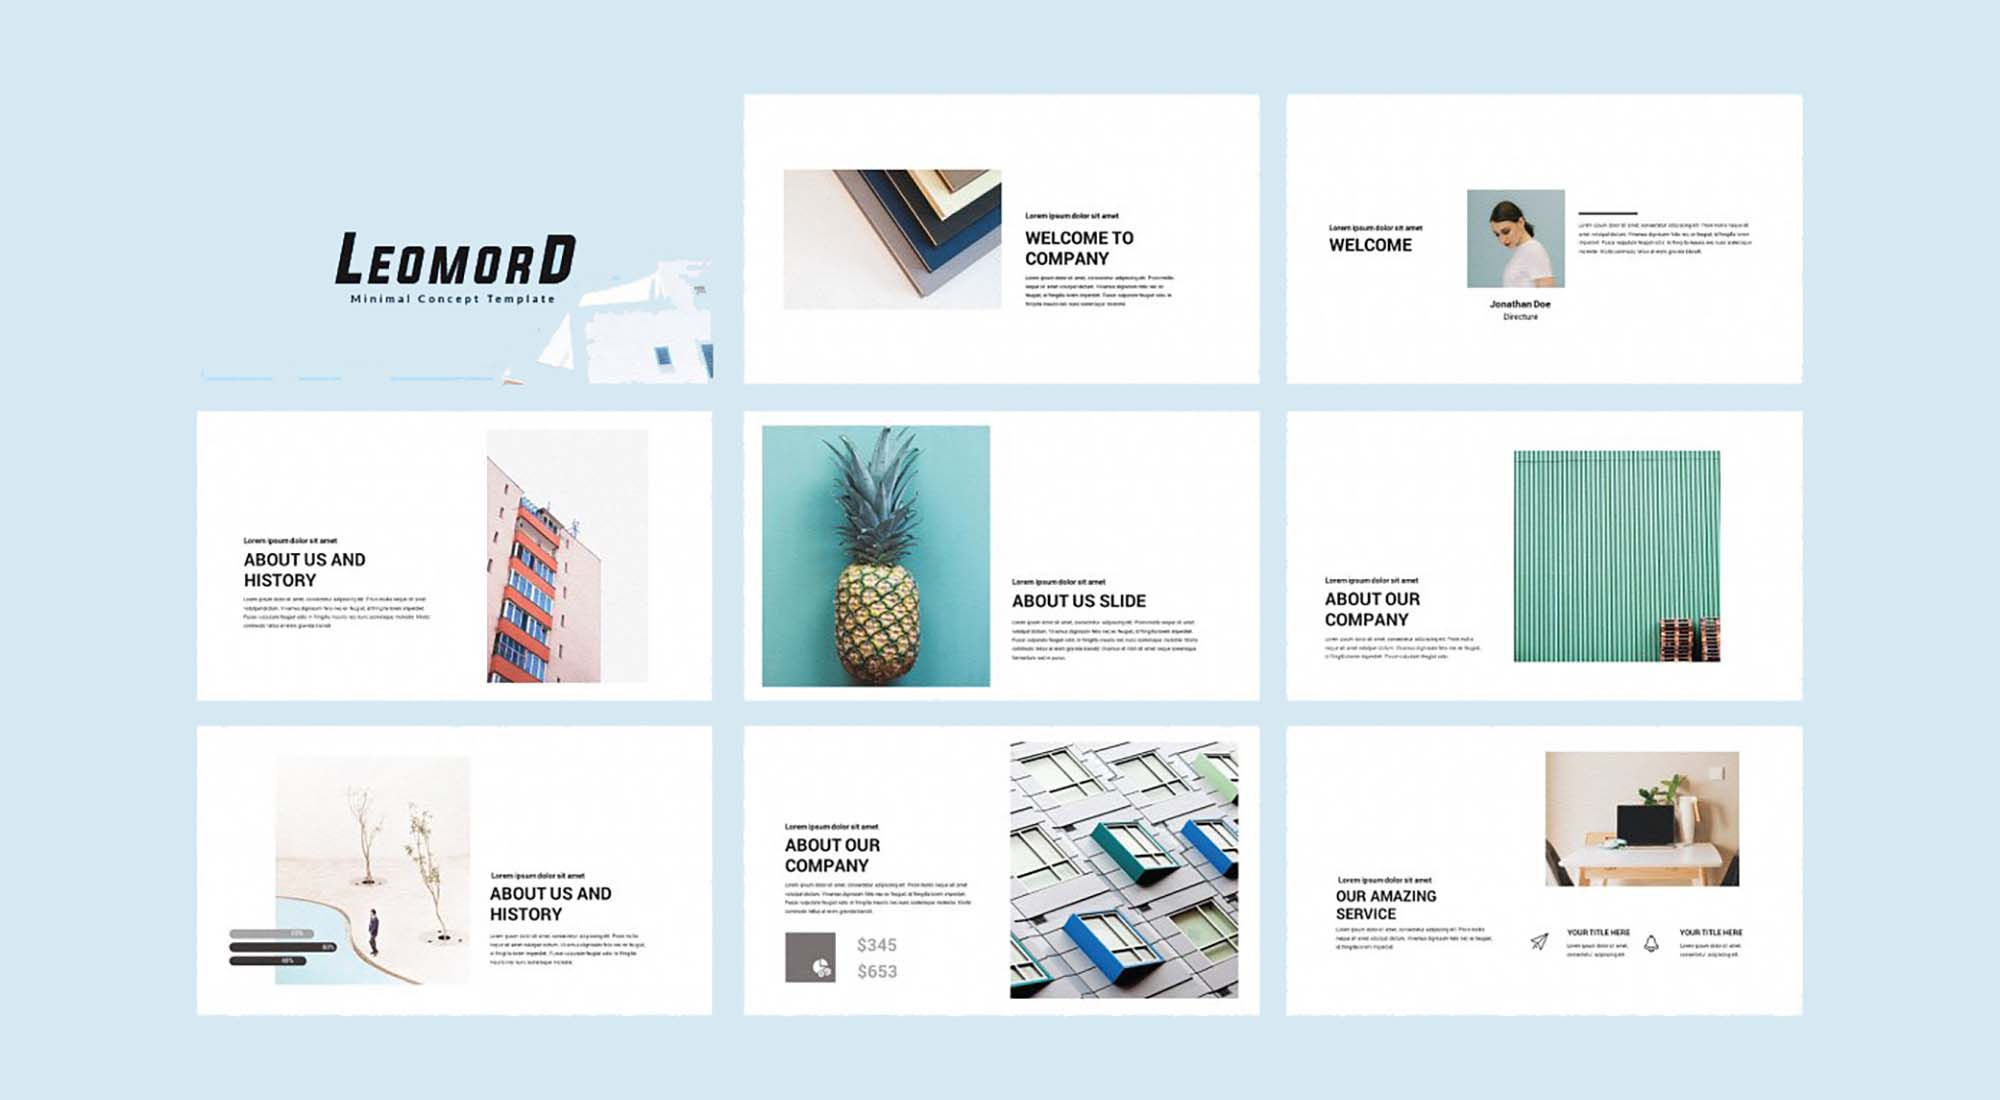 Leomord Powerpoint Presentation Template 1